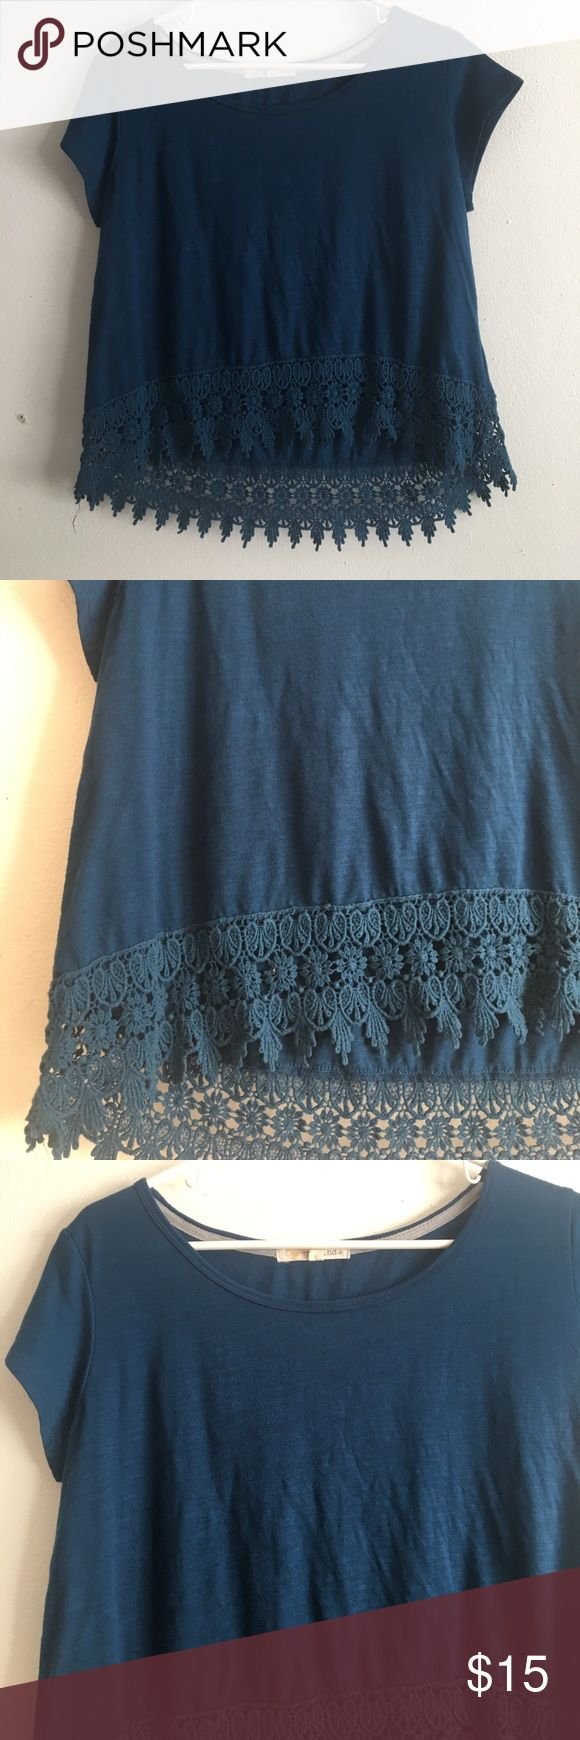 Rewind Crochet Lace Bottom Hem Crop Top Semi cropped fitted top. Features a lovely crocheted hem. Size Medium! Rewind Tops